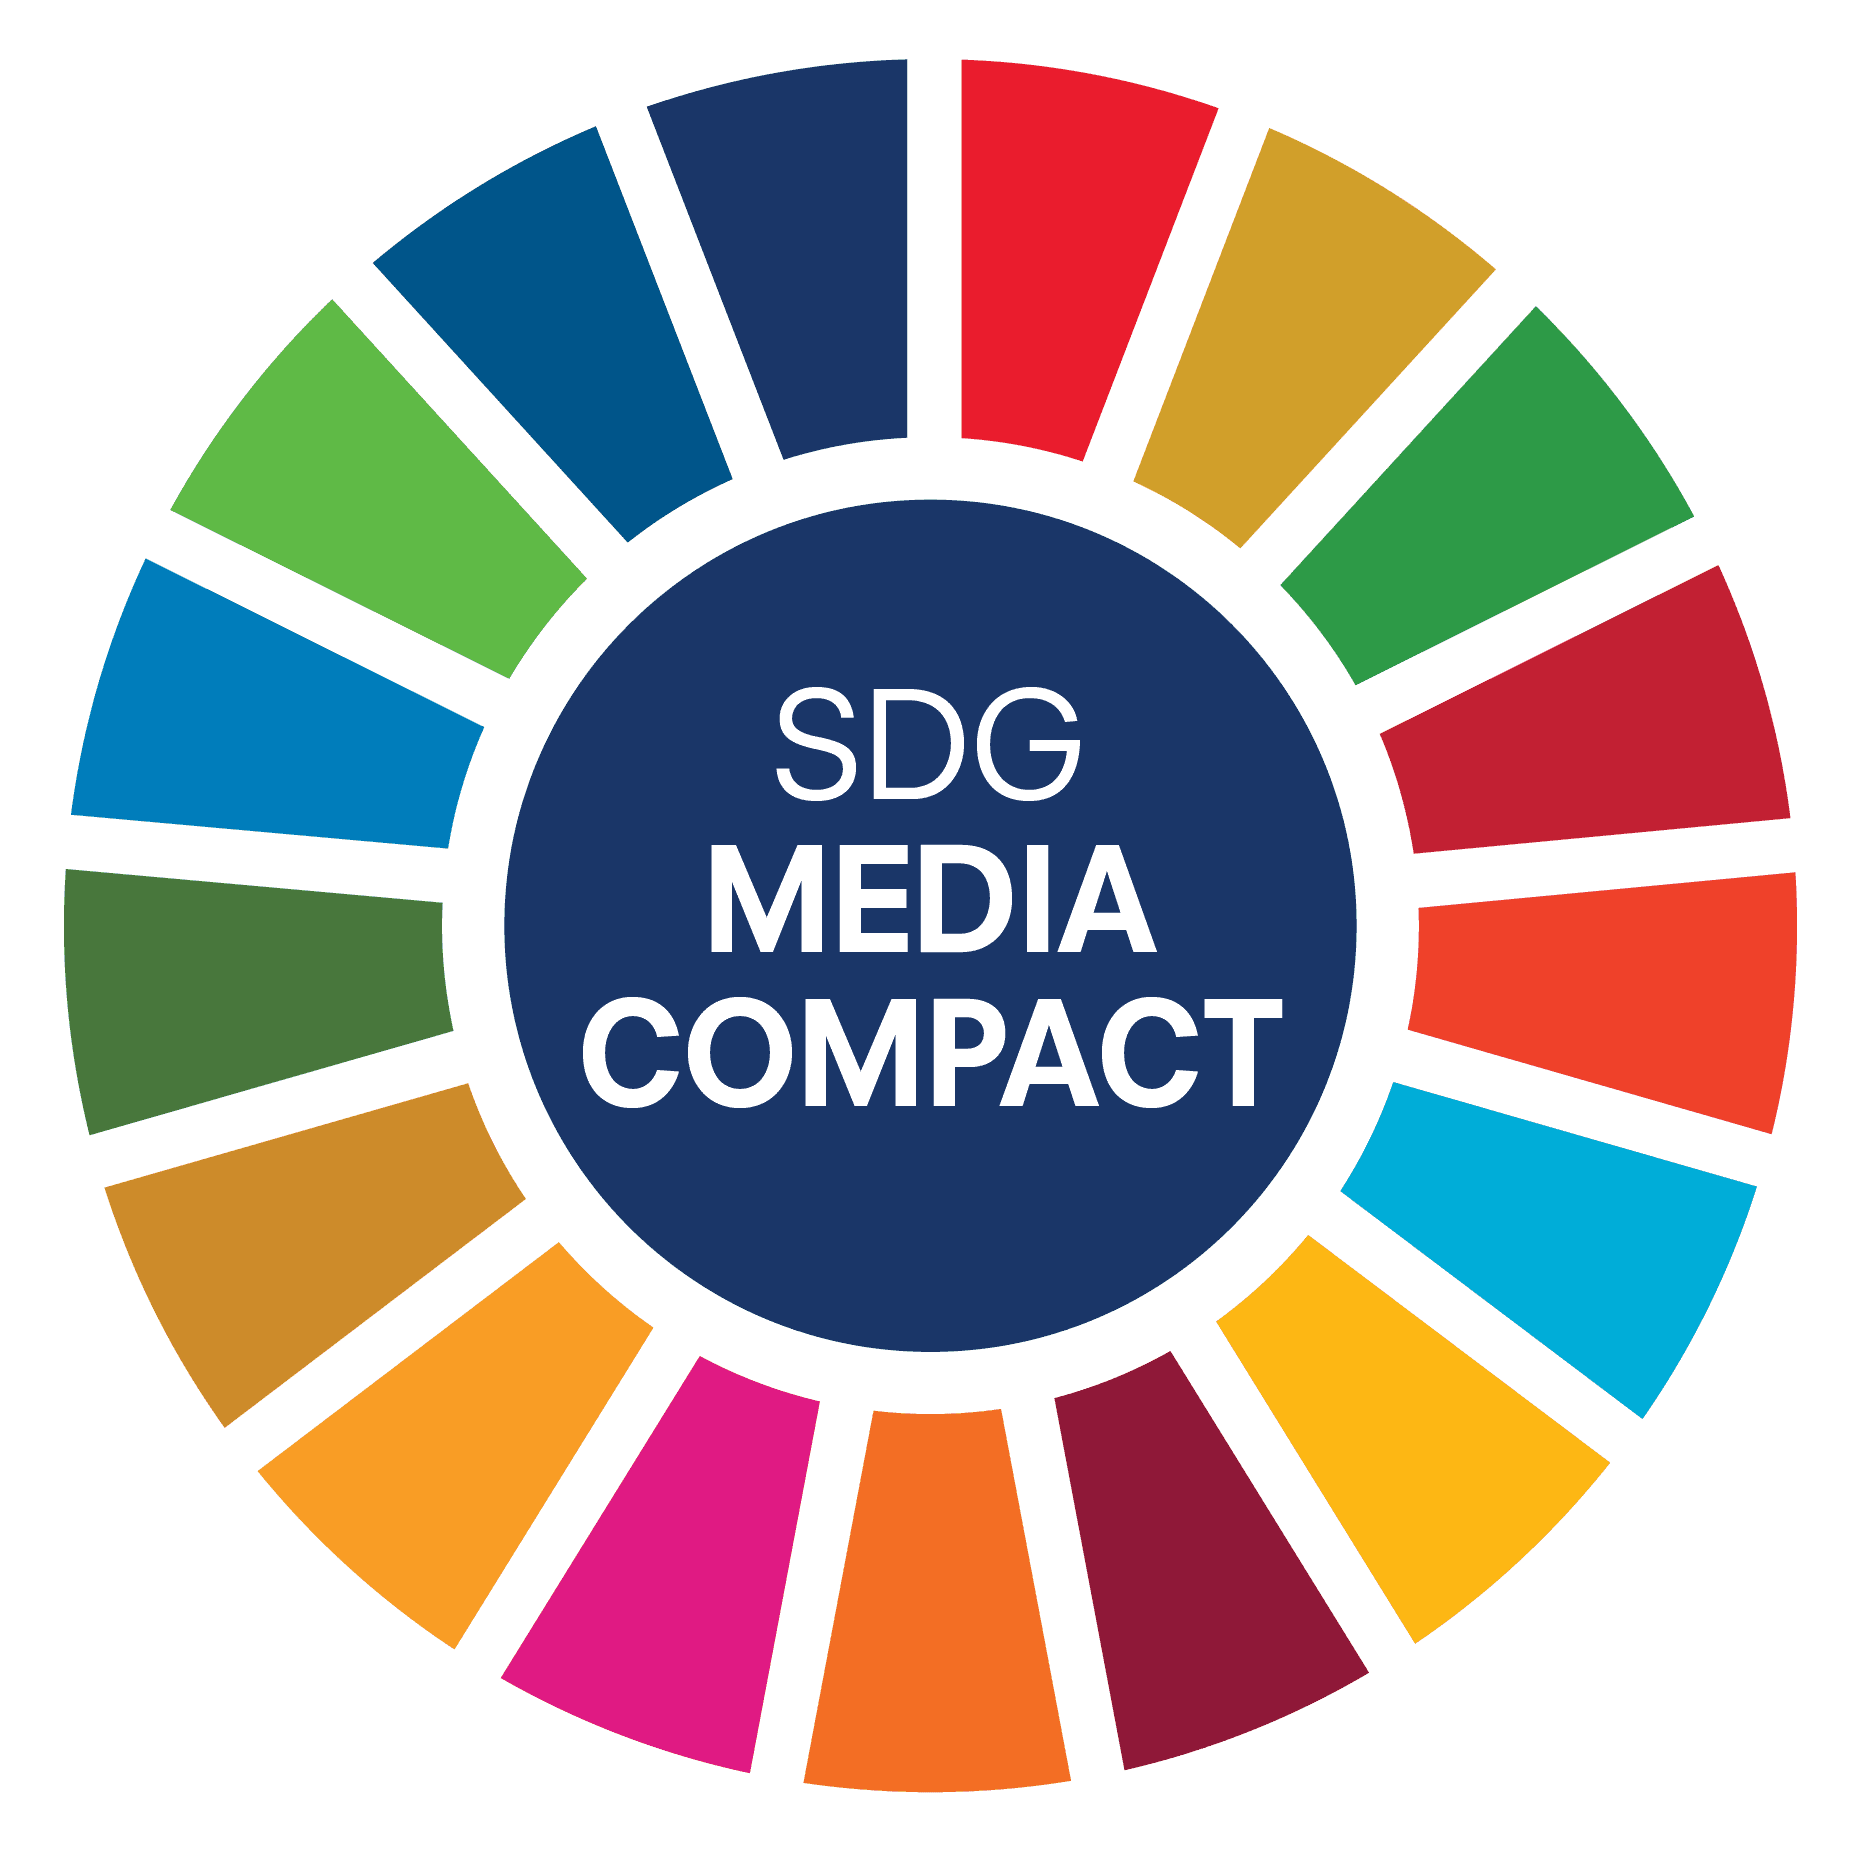 SDG Media Compact_Master logo-01 - Développement durable des Nations Unies